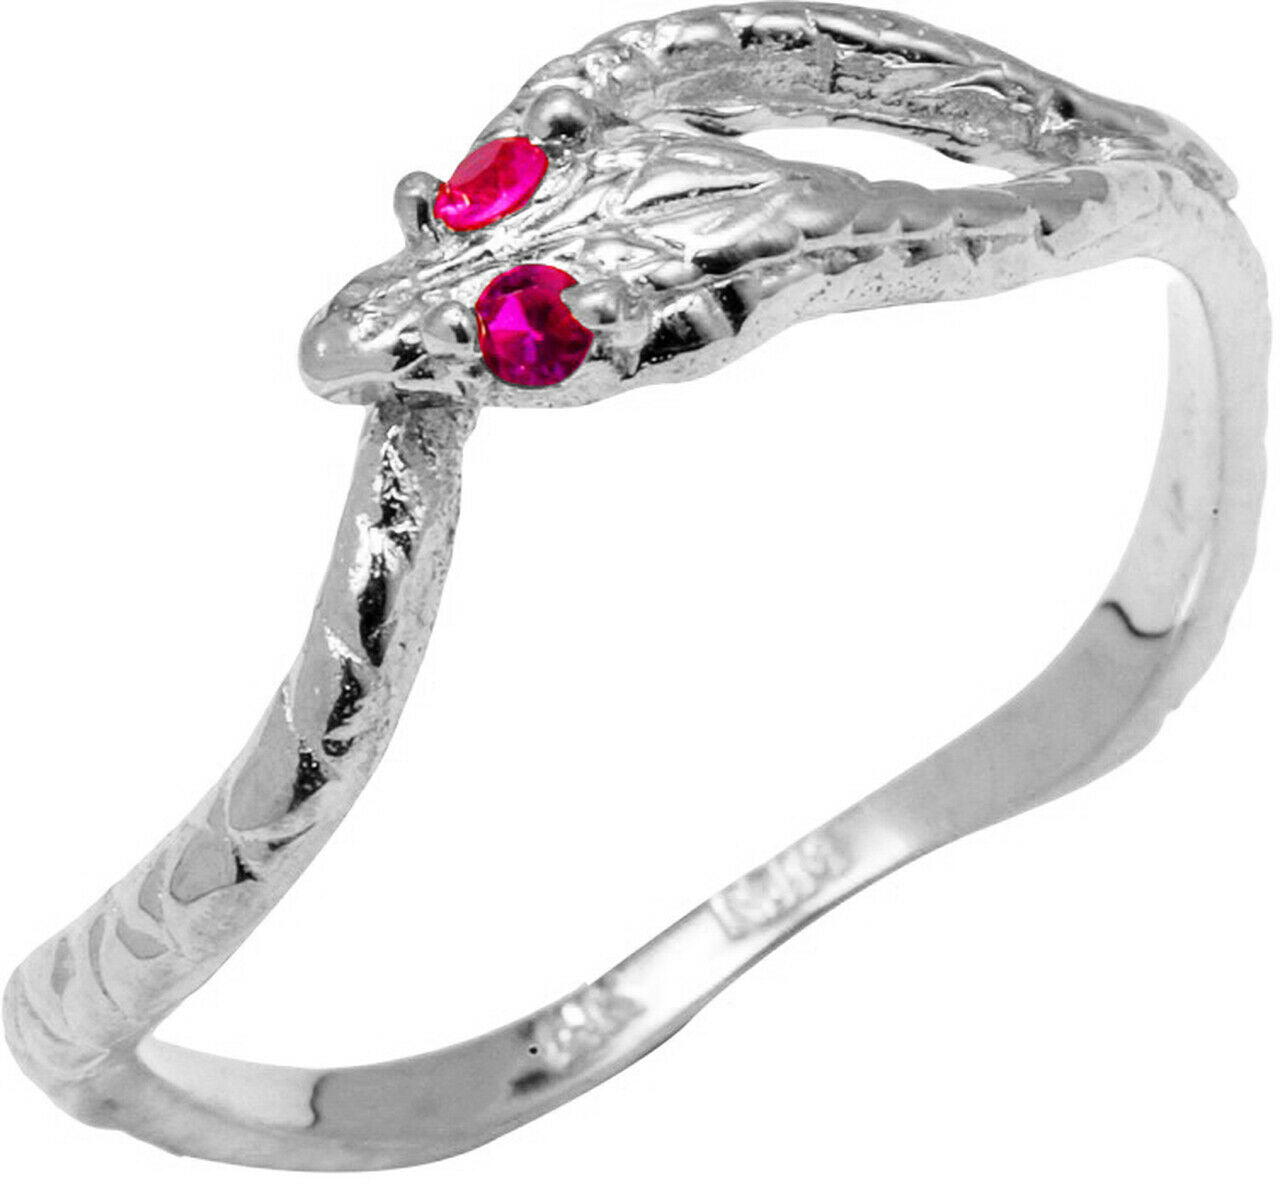 Pure 925 Sterling Silver Red CZ Ouroboros Ring All Any Size Made in USA